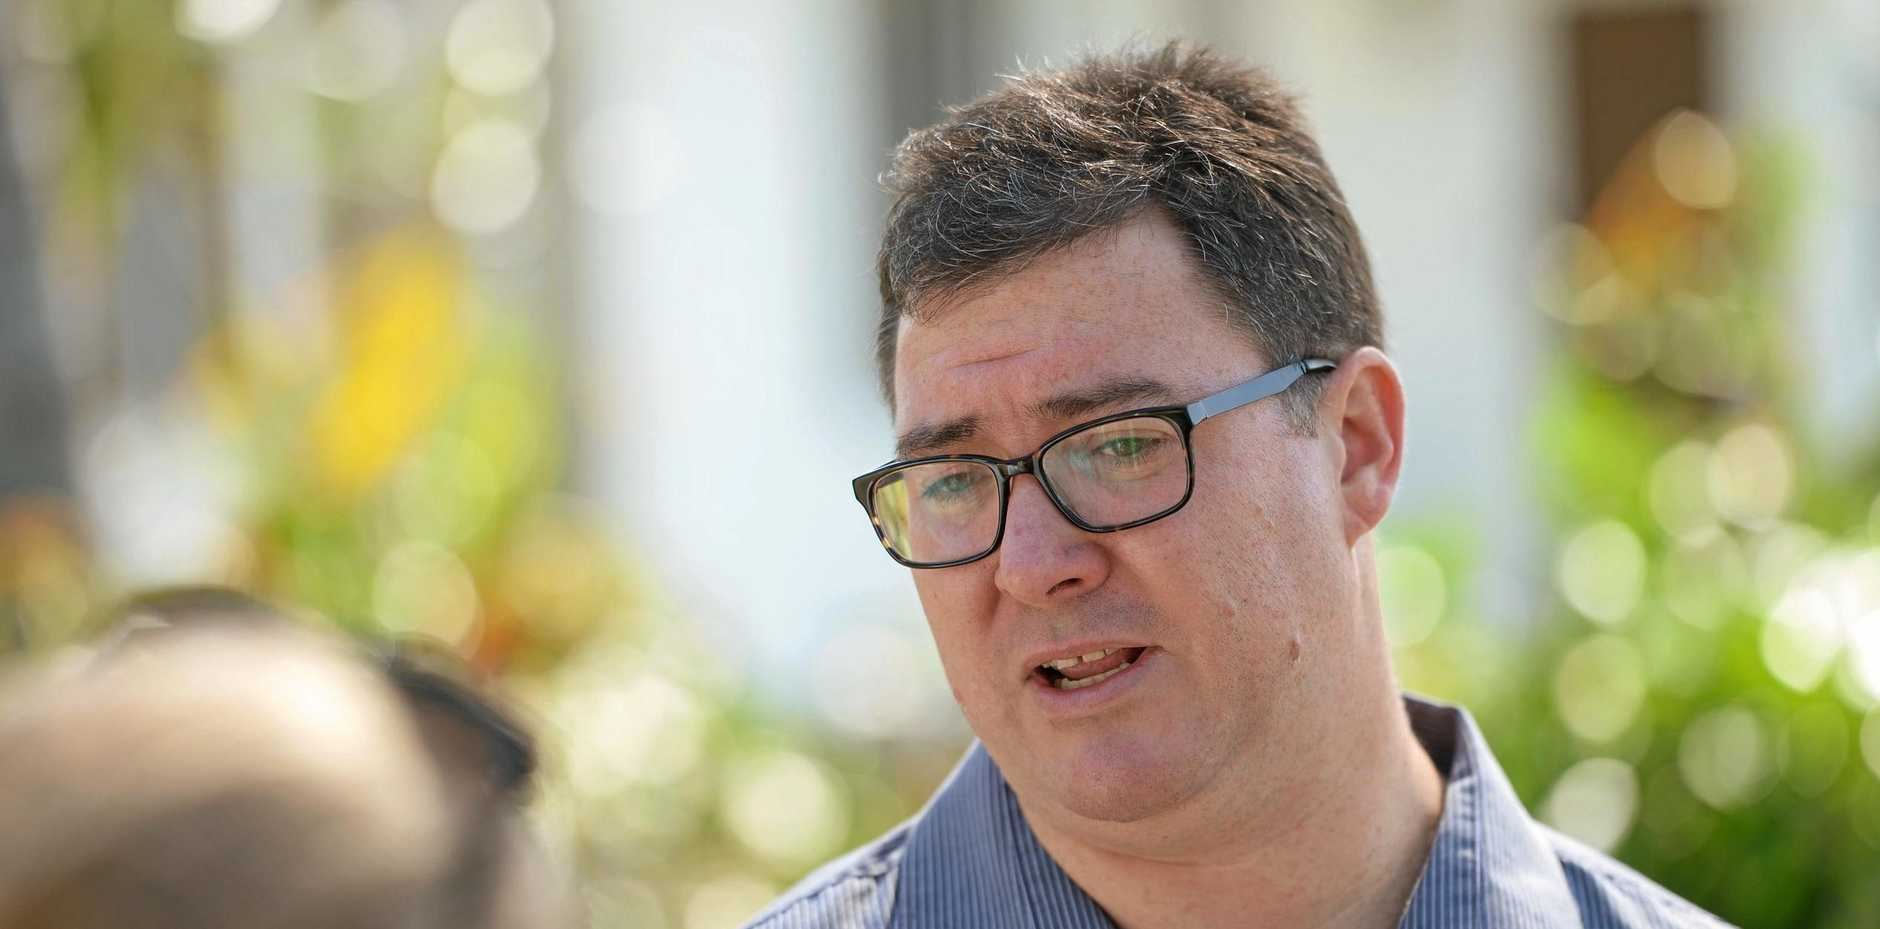 Dawson MP George Christensen has called for dangerous sharks to be hunted down.